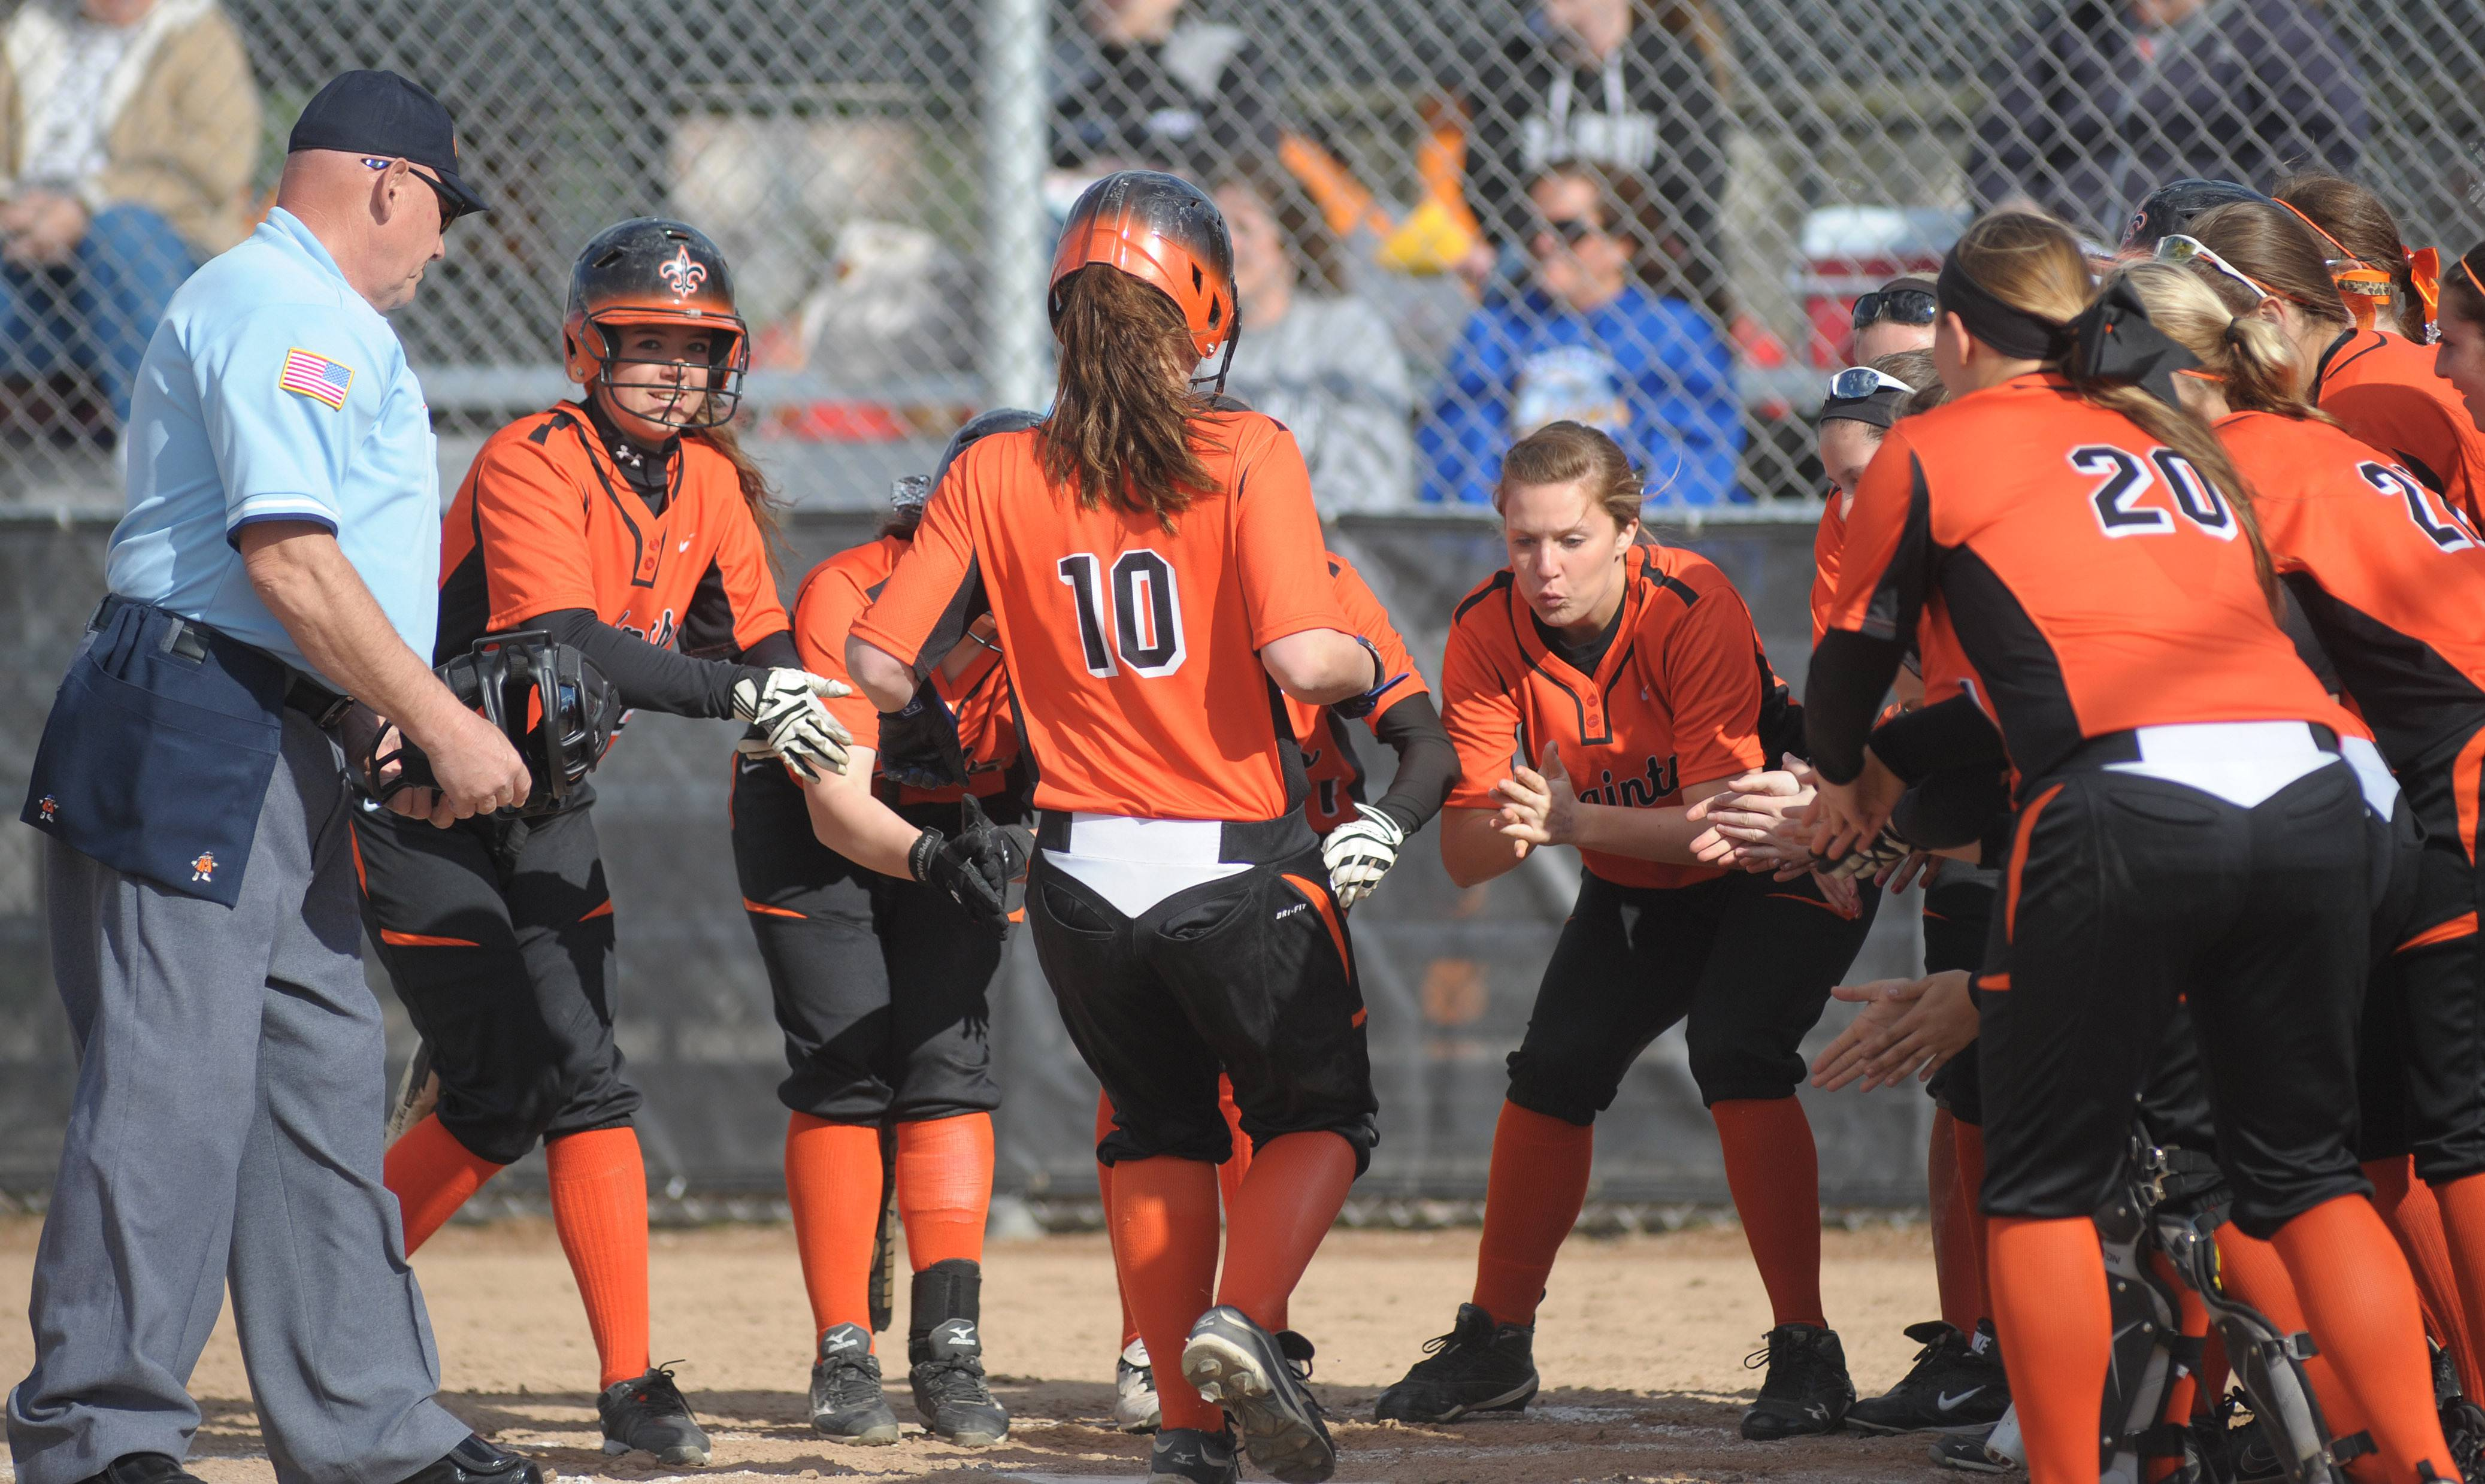 St. Charles East's Kate Peterburs is greeted by her teammates at home plate after her home run Friday against Lyons.